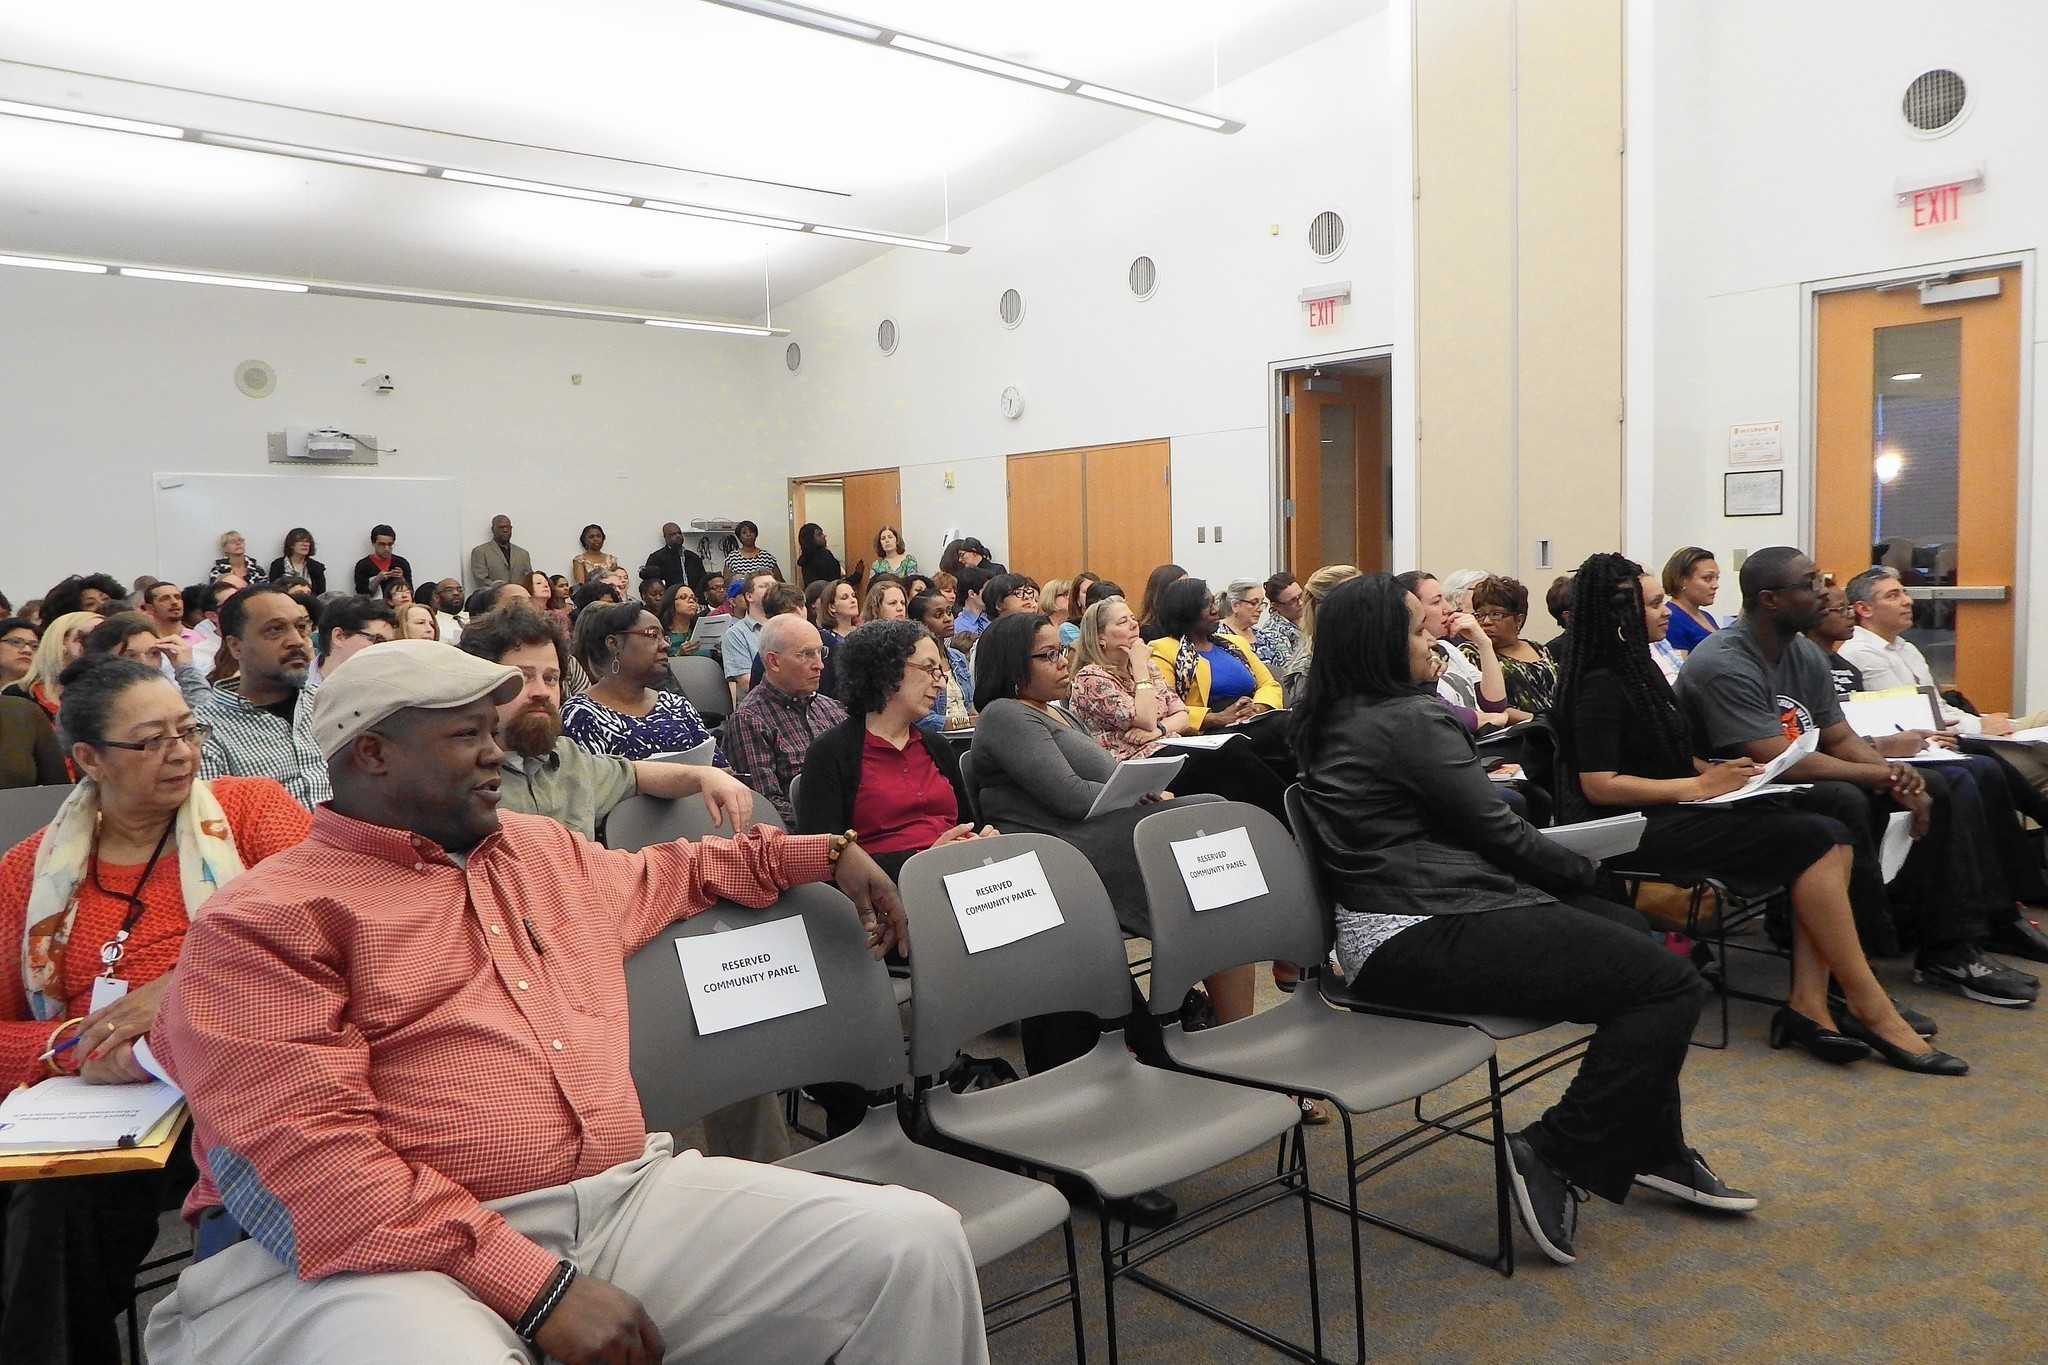 Daniel education system - District 65 Committed To Dismantling Racism In Education System Board Member Says Evanston Review